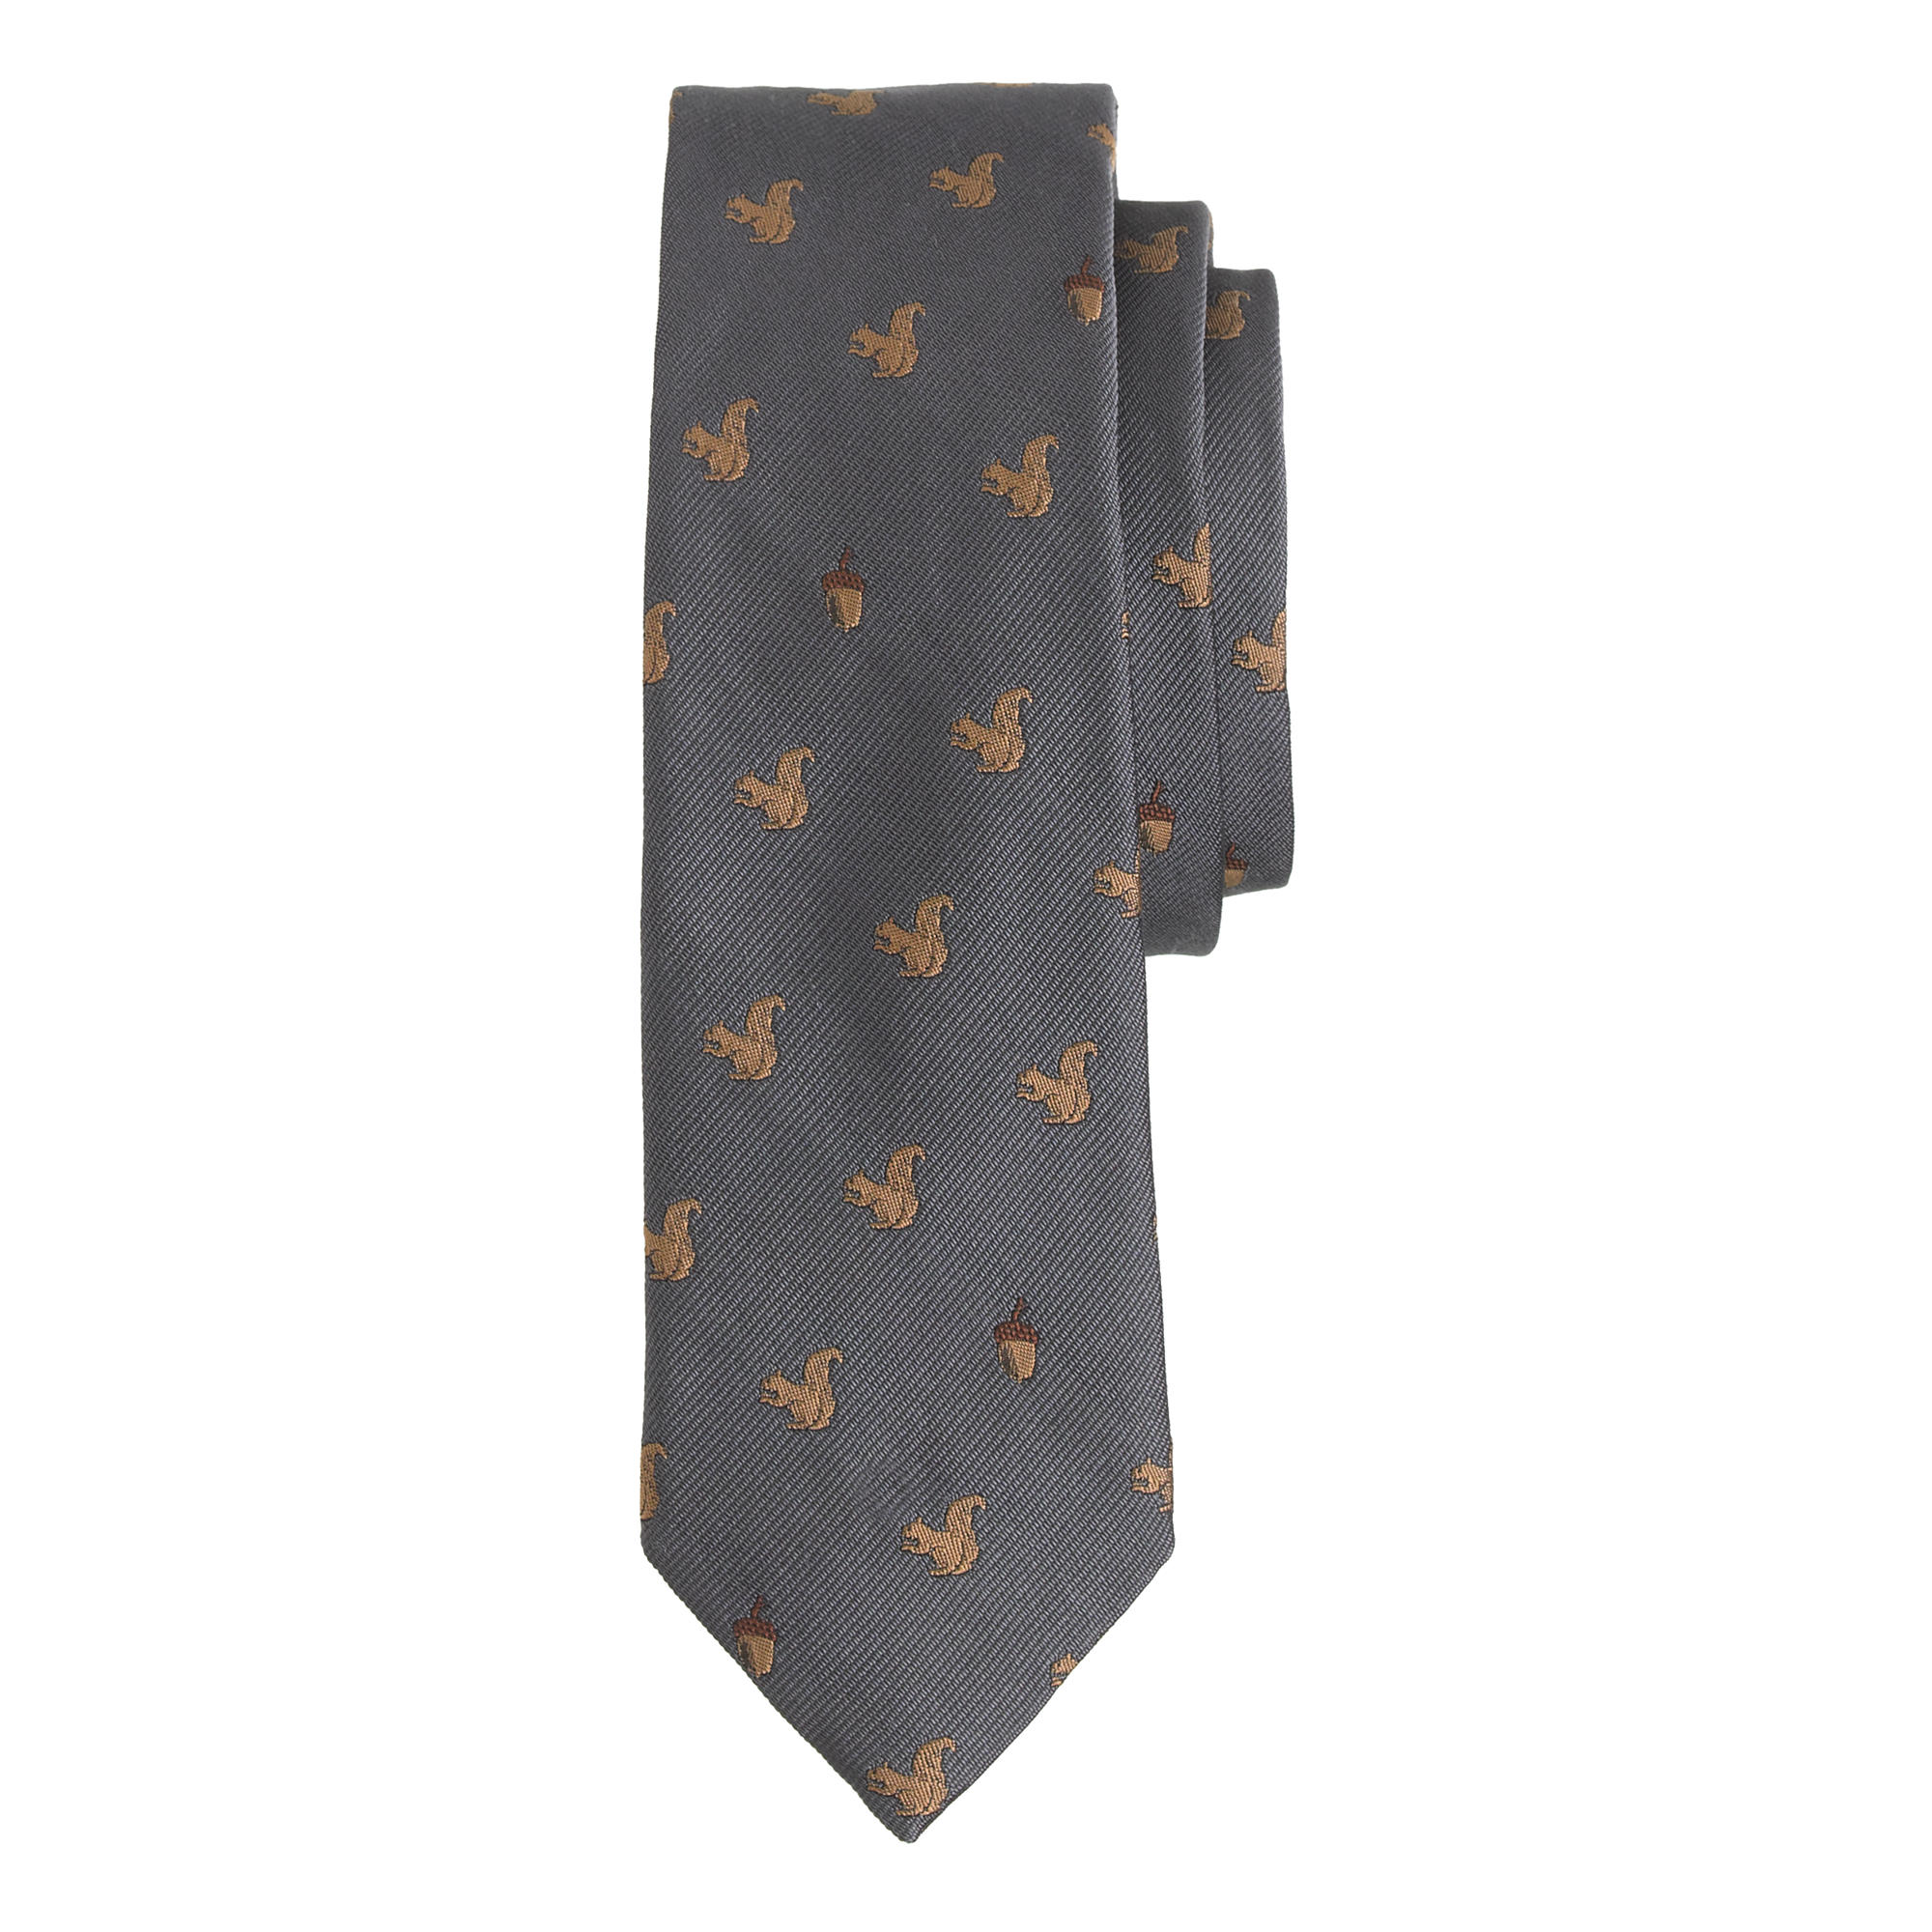 J.Crew English Silk Tie with Embroidered Squirrels   10 Fall Wardrobe Essentials for Men